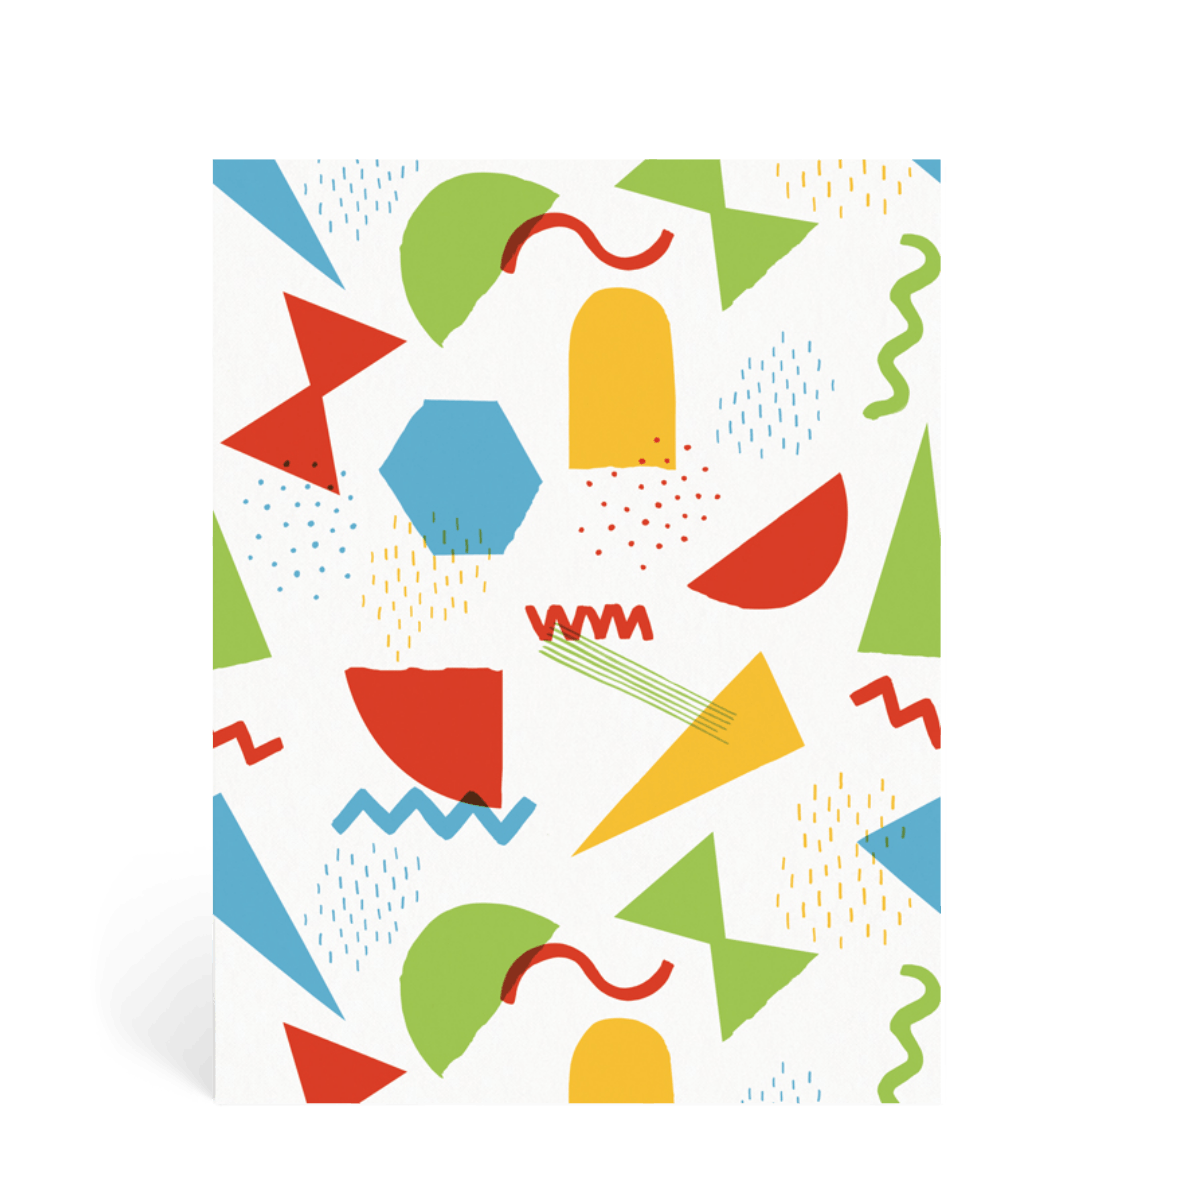 Https%3a%2f%2fwww.papier.com%2fproduct image%2f43446%2f31%2fshapes colours 11051 back 1534414794.png?ixlib=rb 1.1